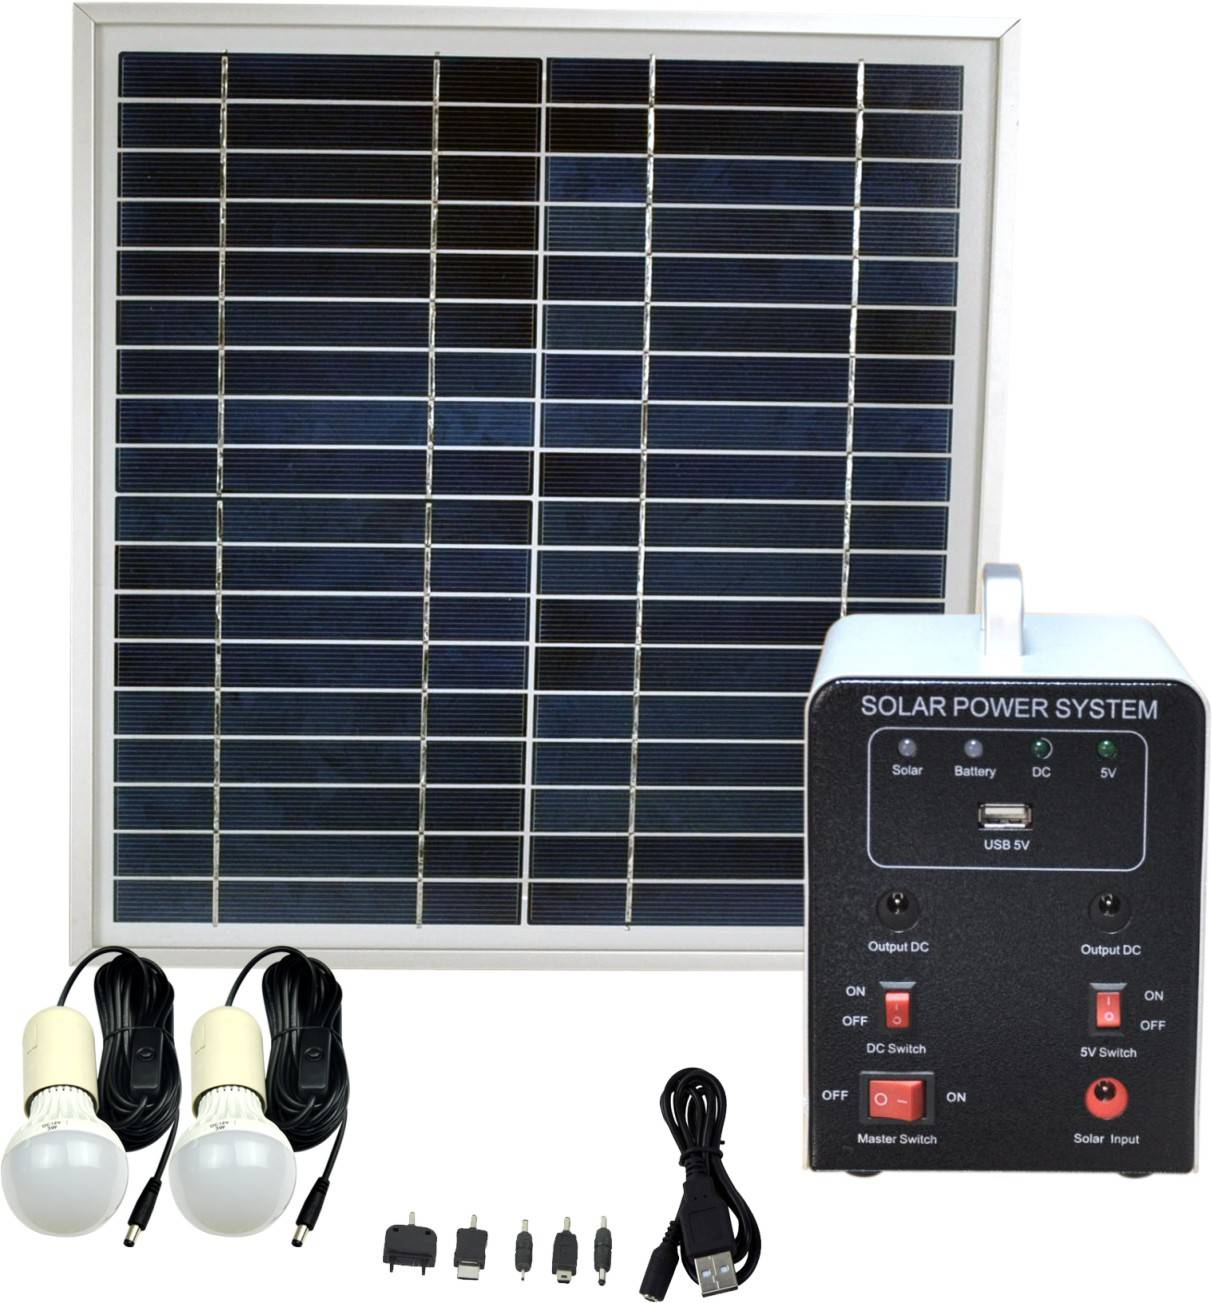 Portable 8W Solar Panel System Kit with 4.5AH AGM Battery for Lighting Mobile Phone Charging